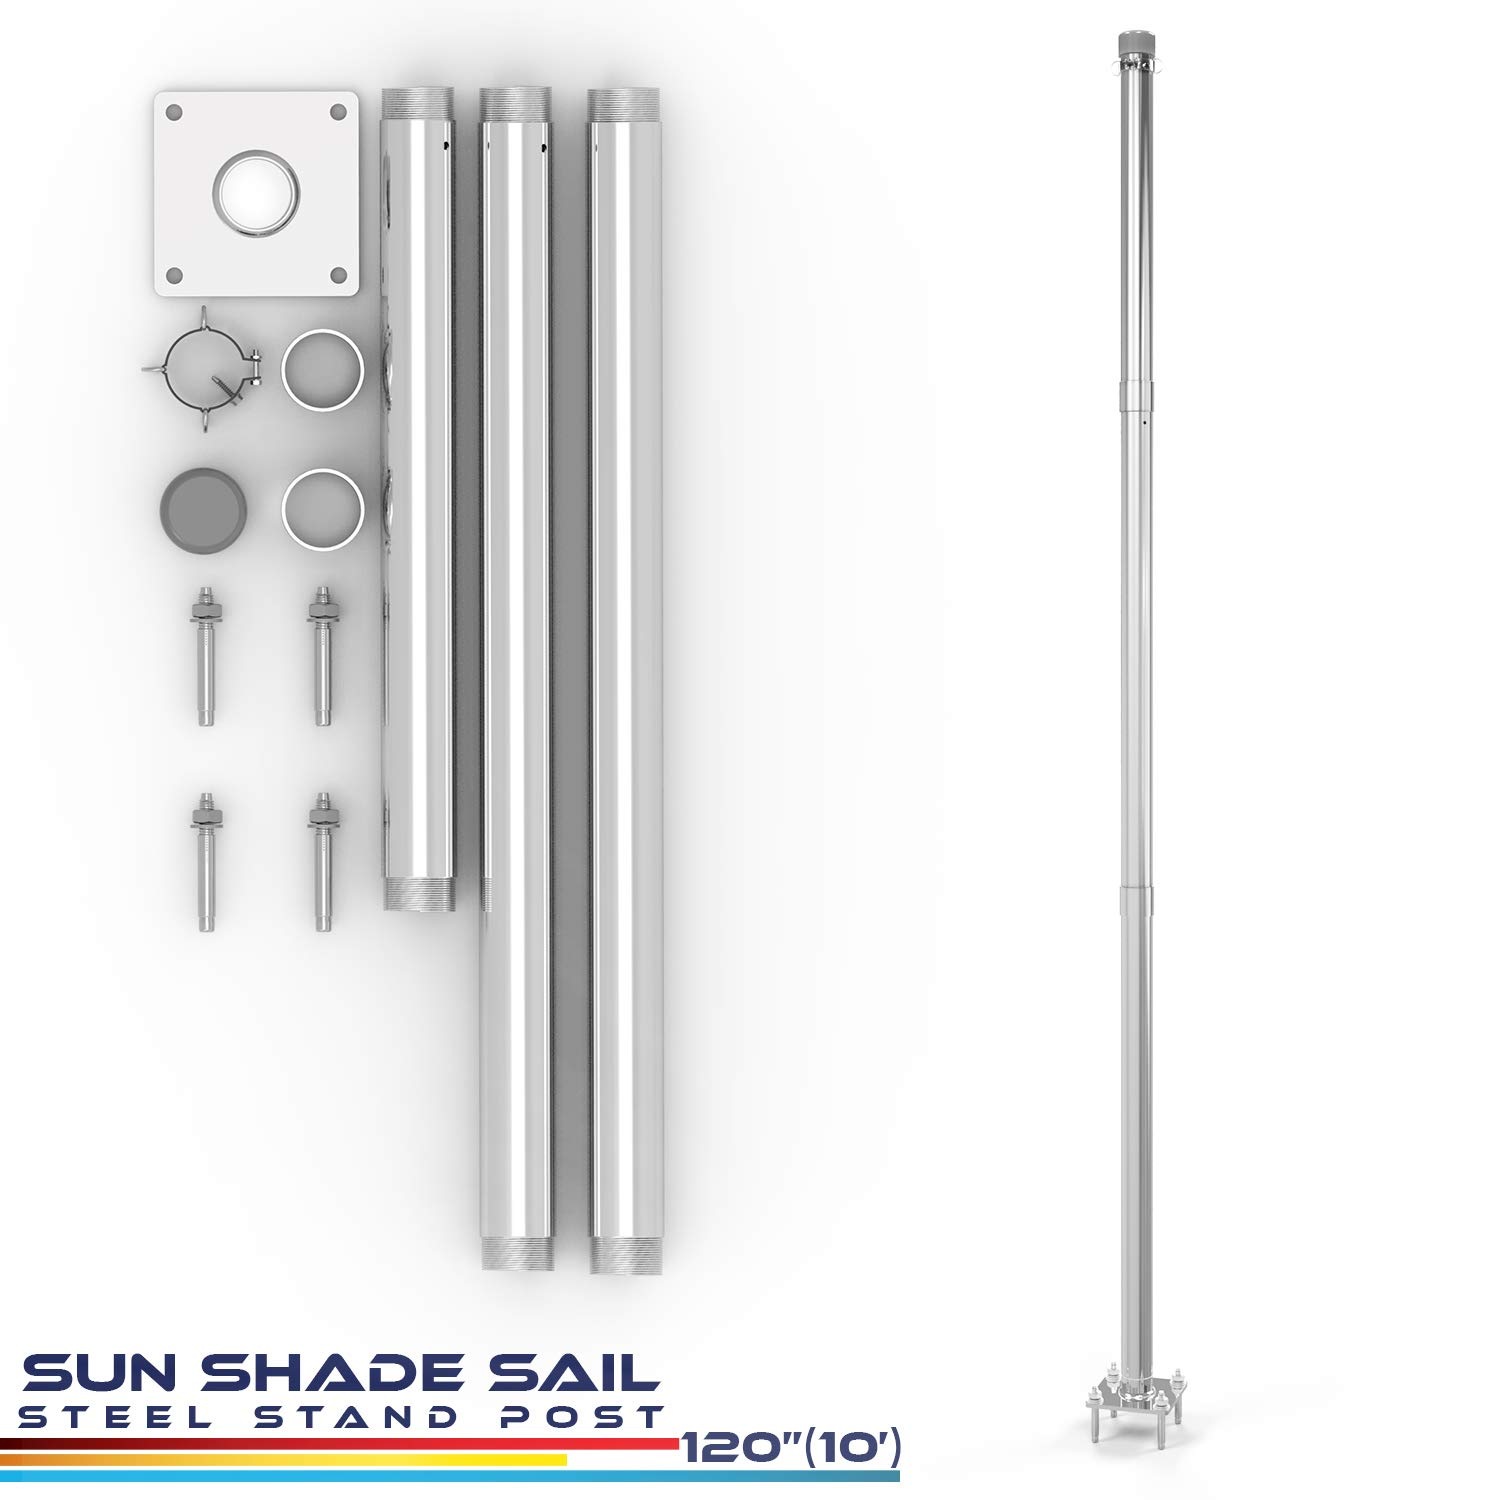 Windscreen4less Sun Shade Sail Pole Kit, Replacement Stand Support Post -10' Feet Tall (120'') for Canopy Awning Fence Patio Deck Garden Concrete Extension Pole Available φ 3''-Steel by Windscreen4less